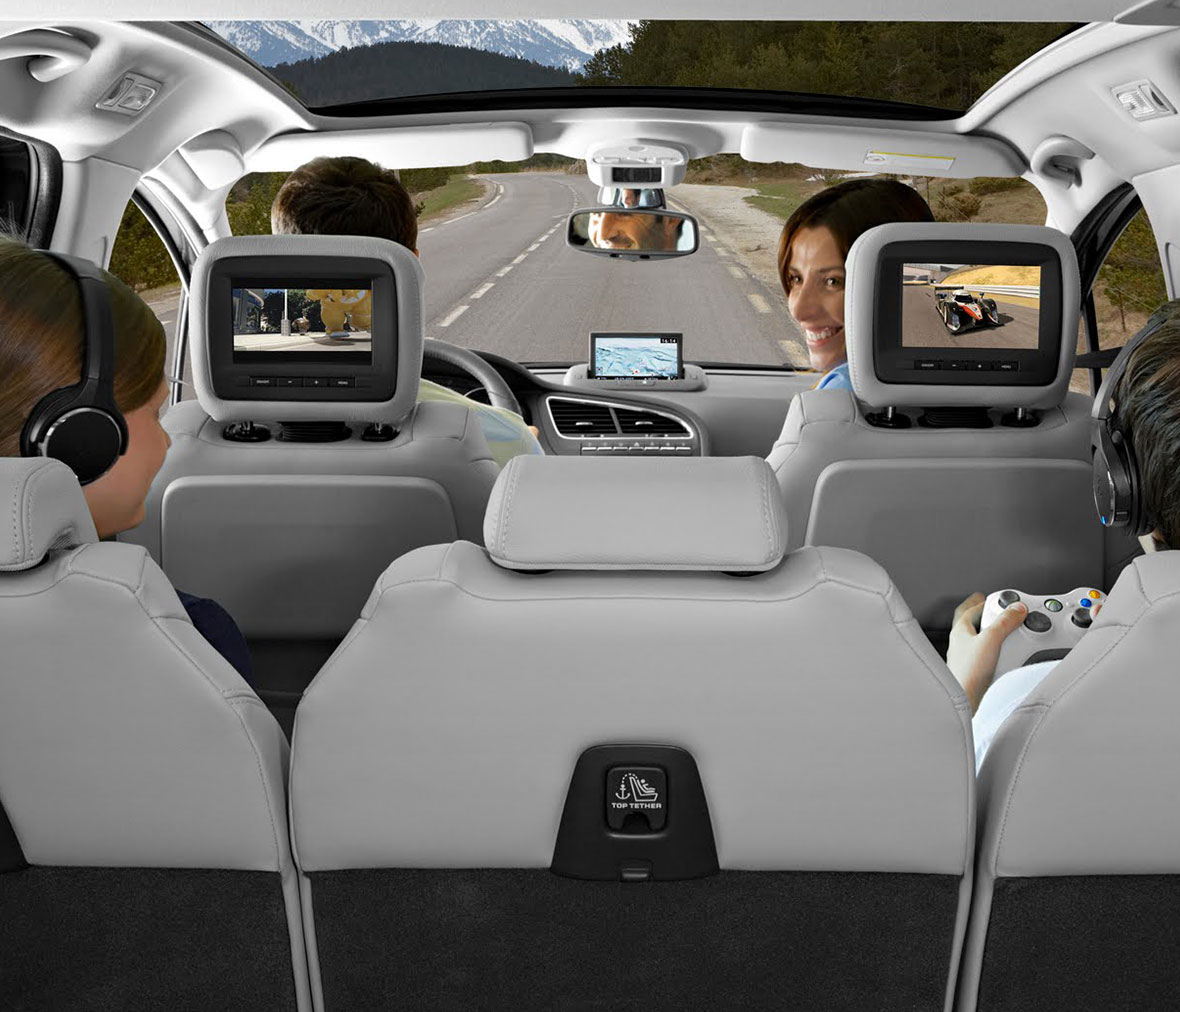 In Car Entertainment - ACE Installs